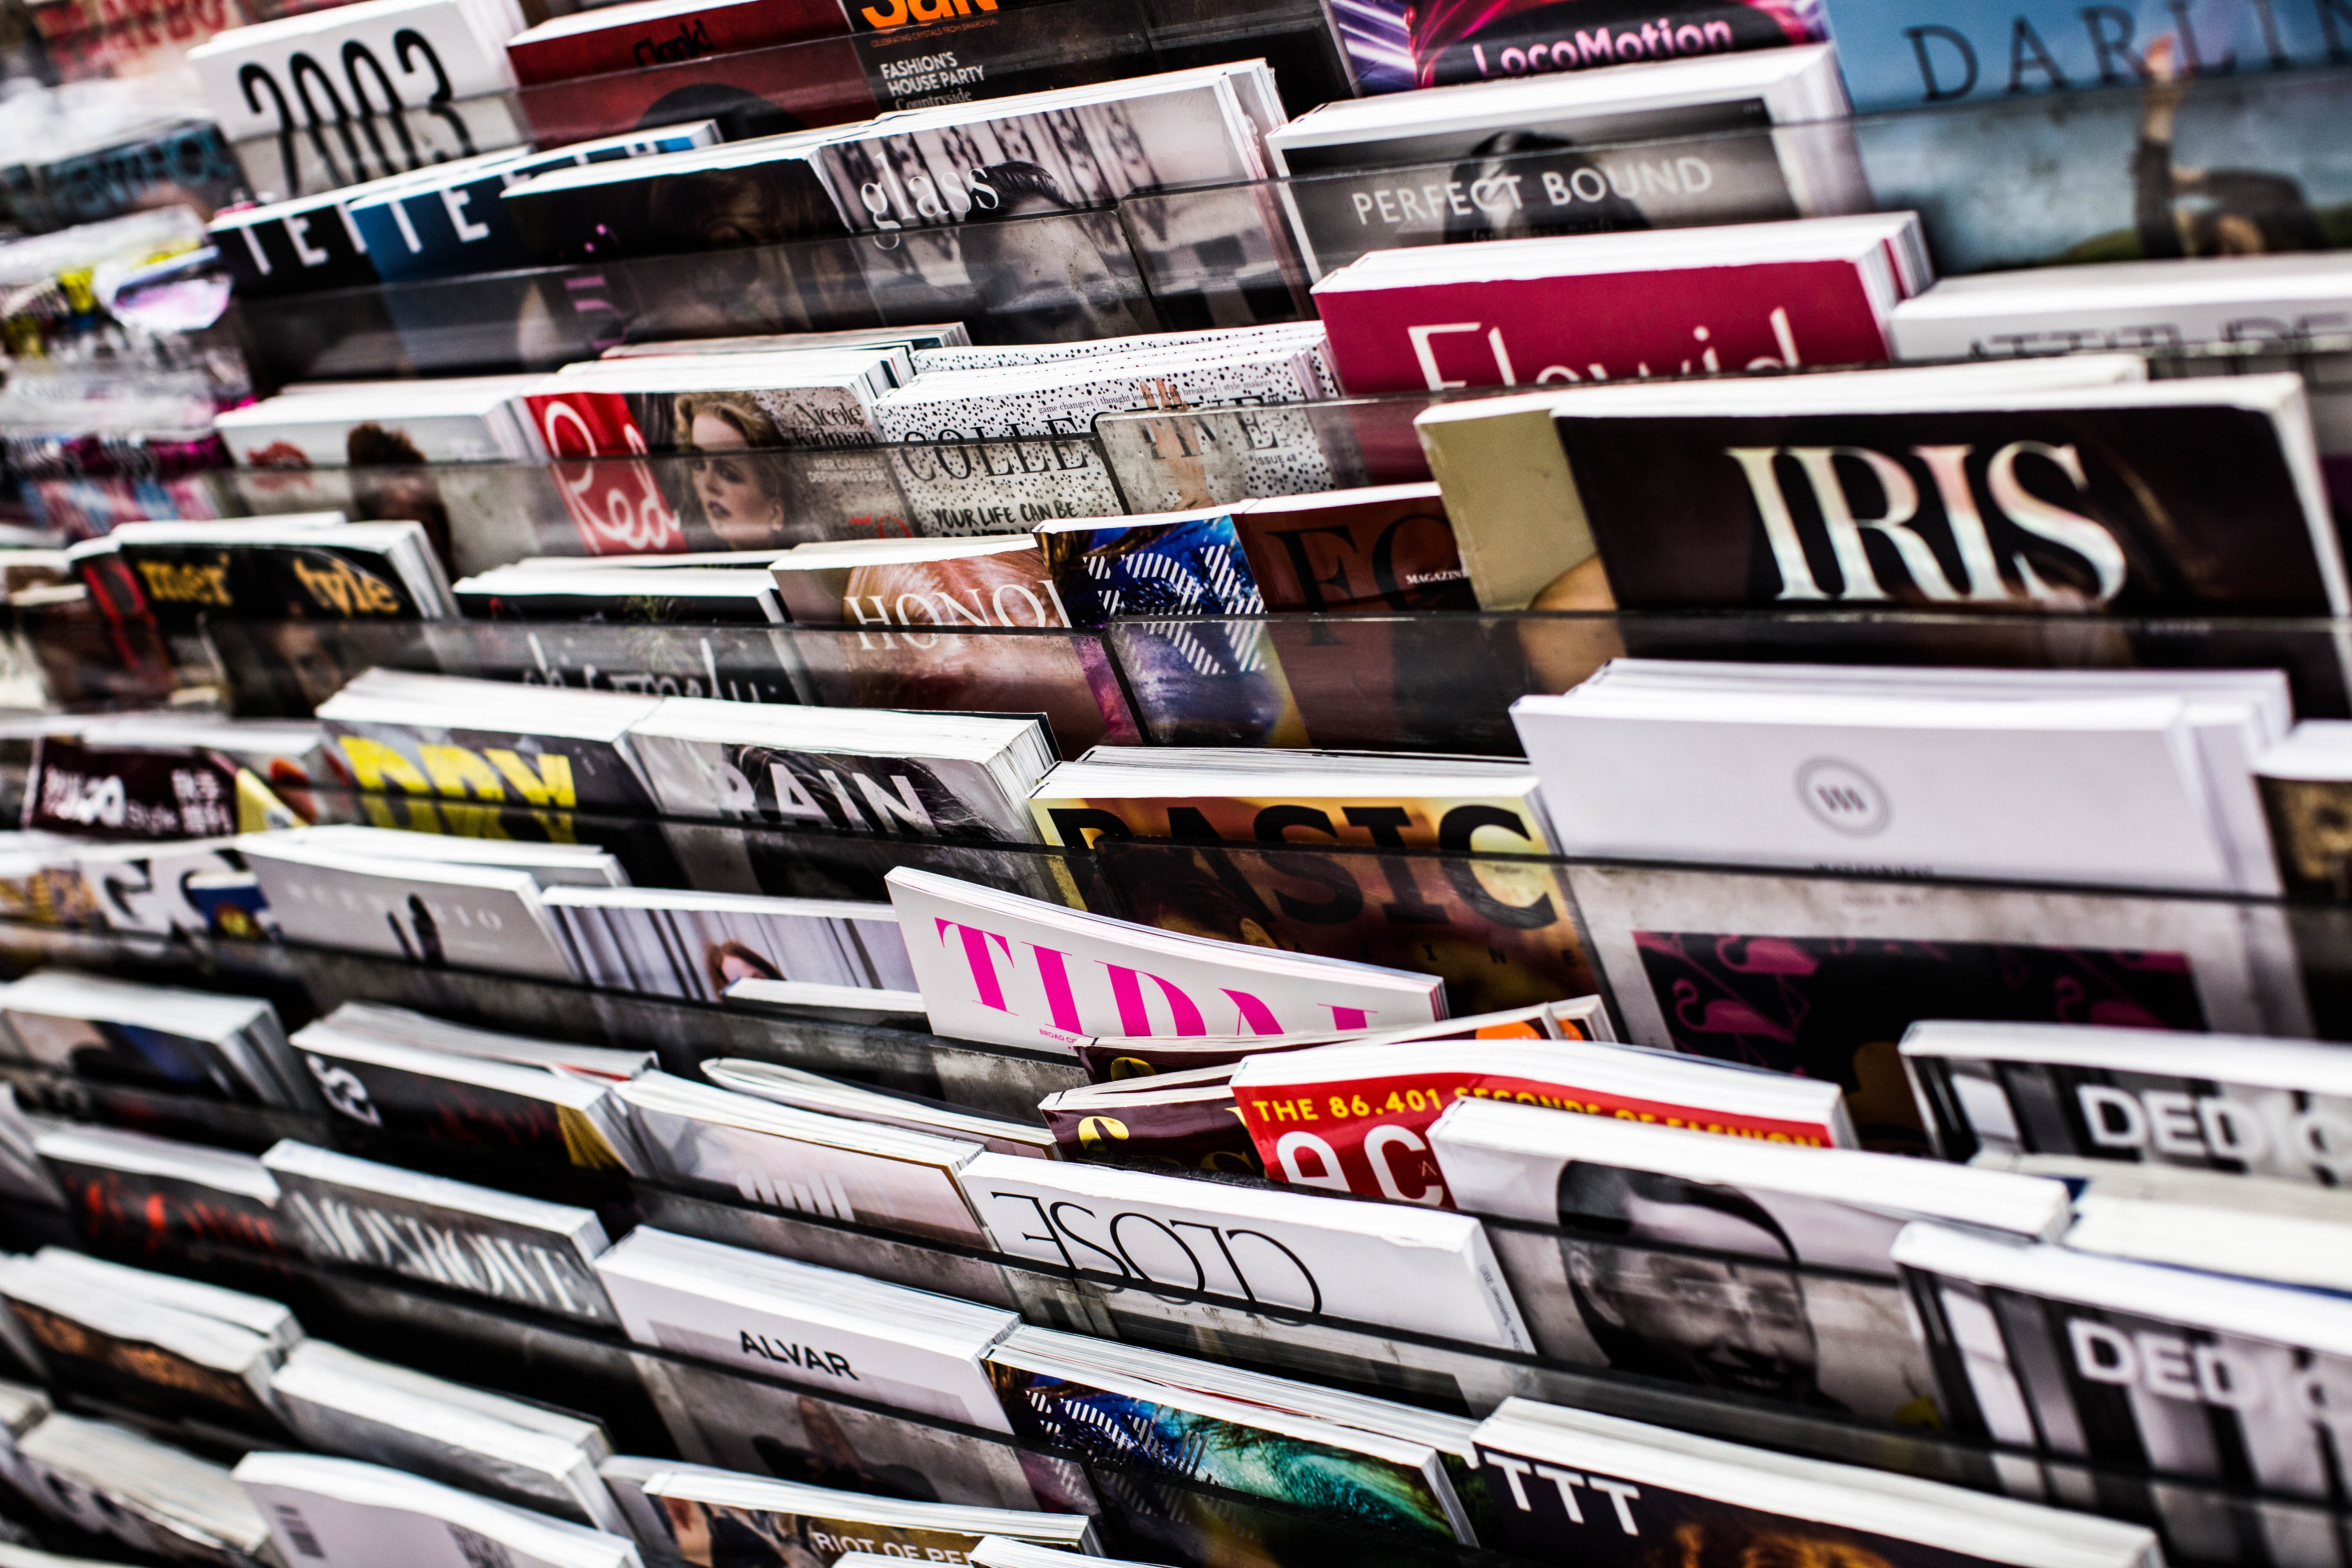 The image is of a rack filled with tons of magazines.